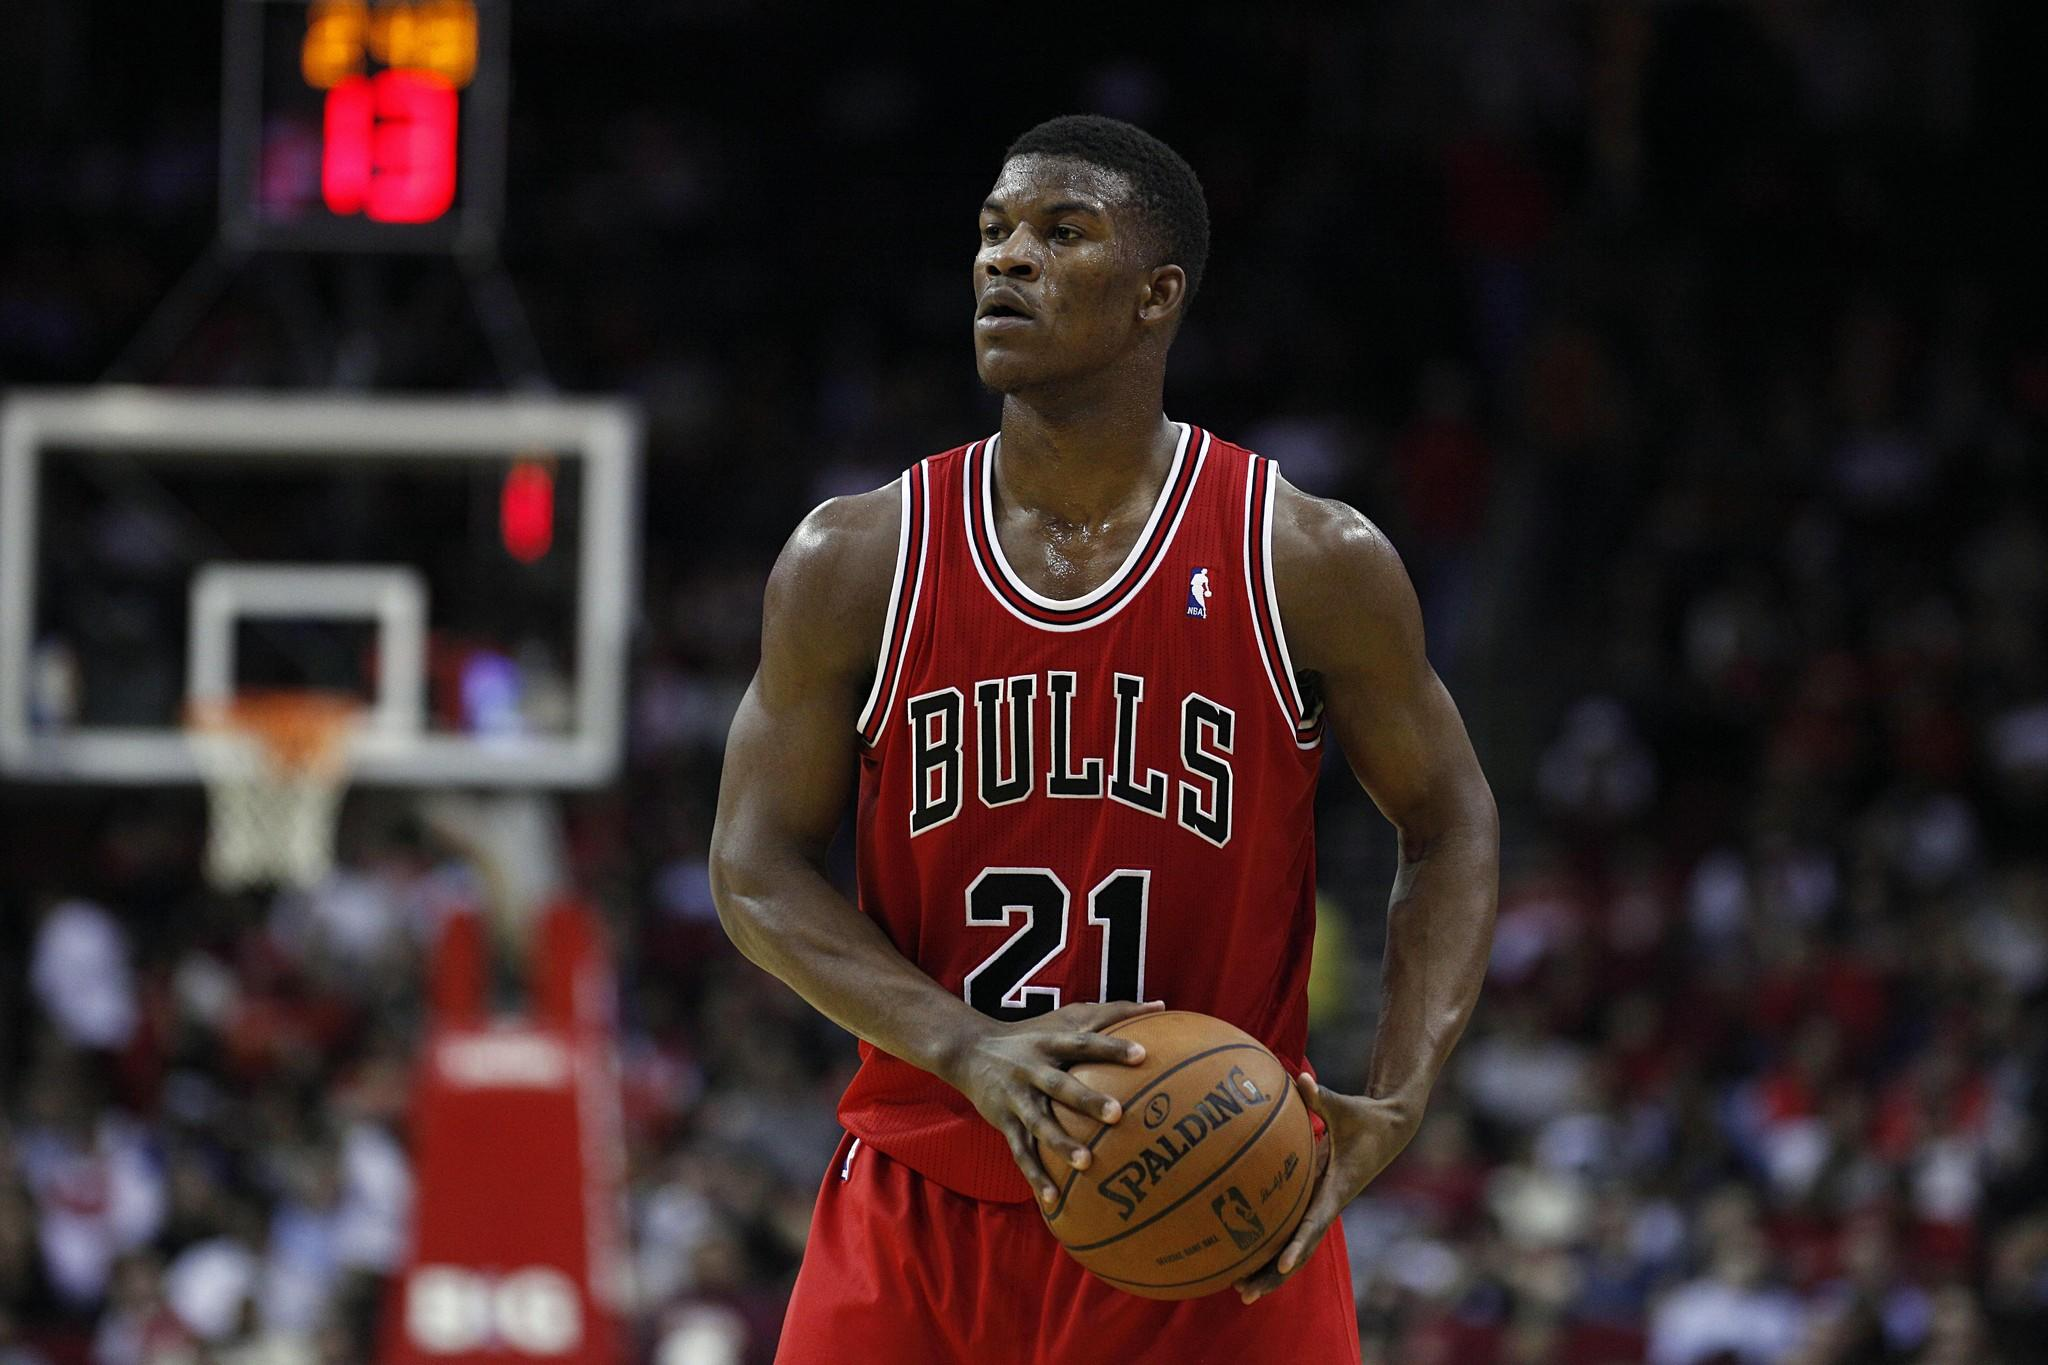 Chicago Bulls shooting guard Jimmy Butler.